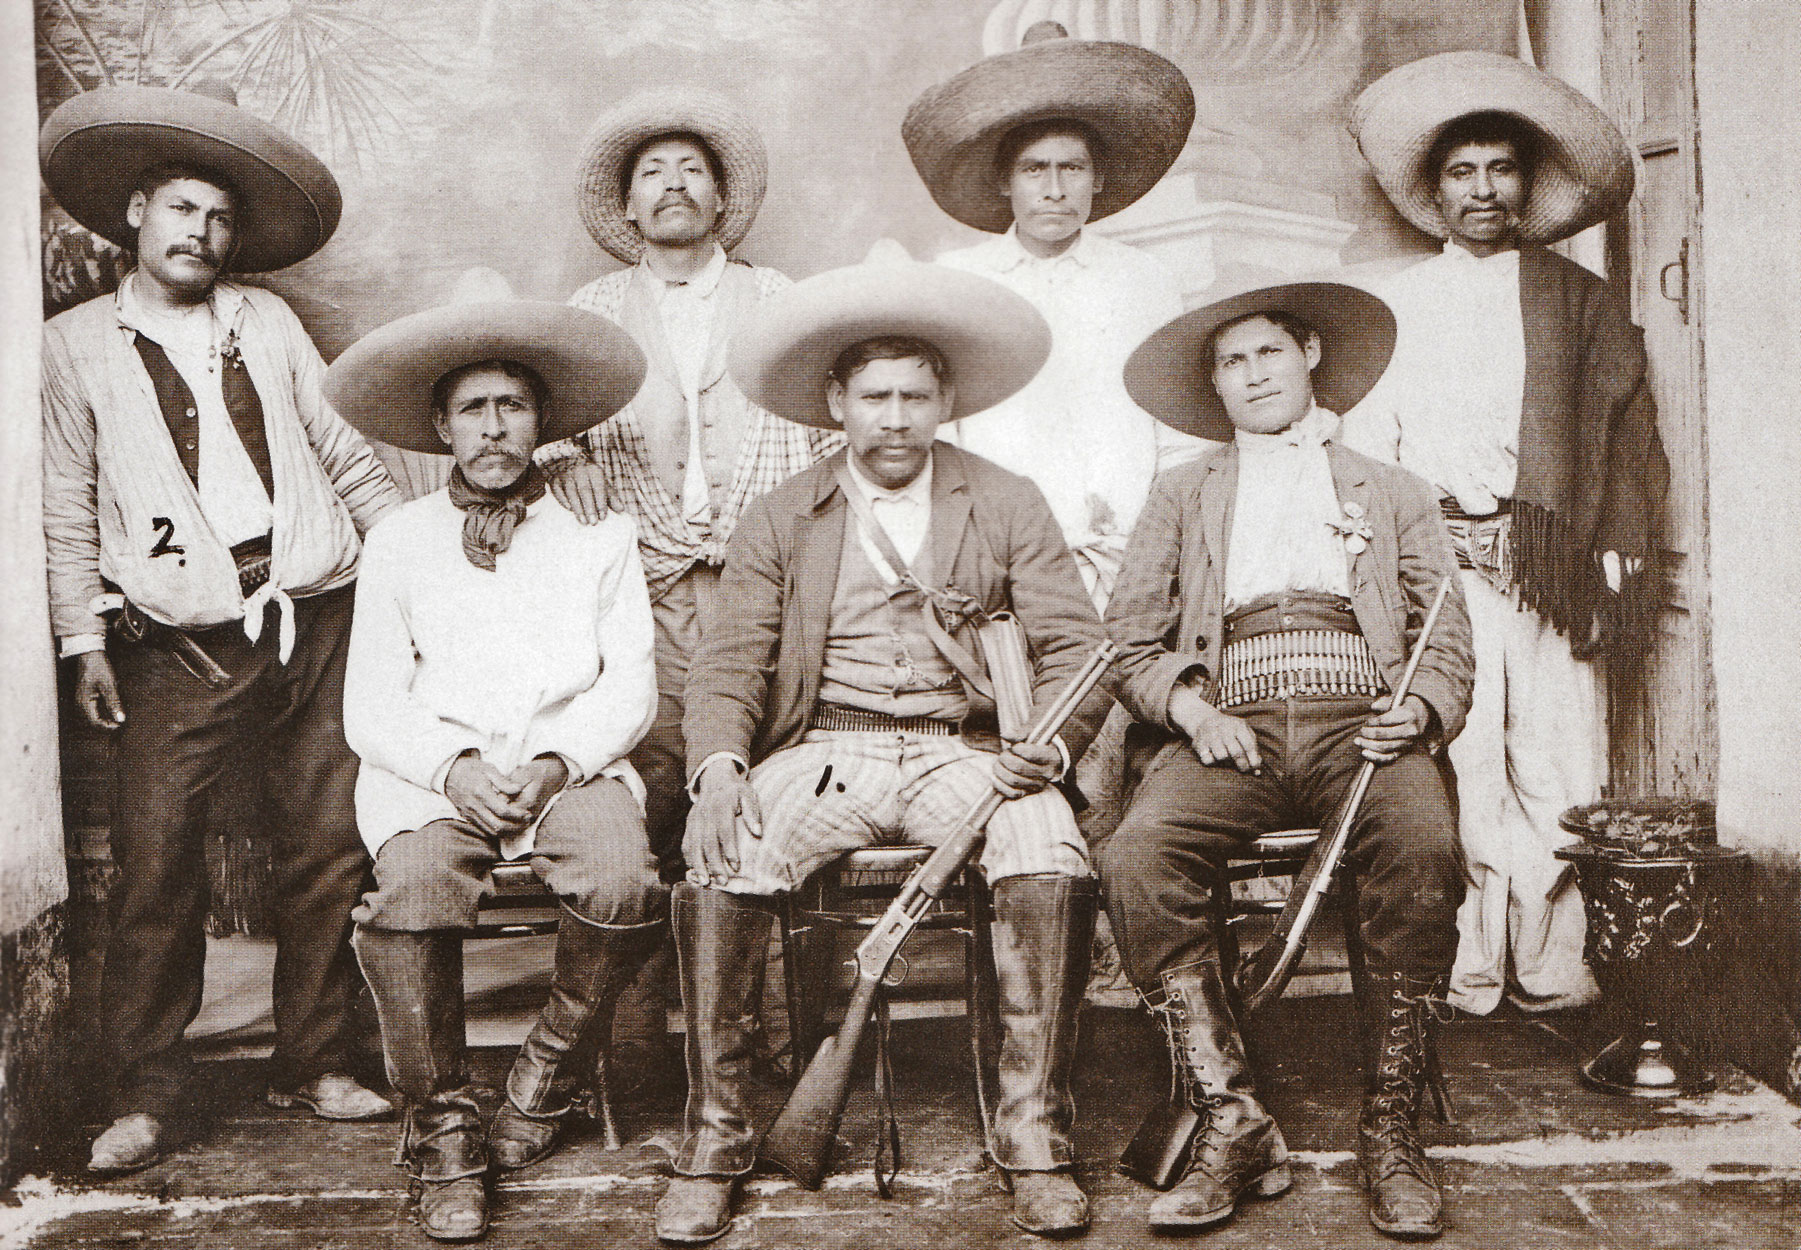 a history of the war between the zapatistas and mexico Start studying latin america history & culture learn vocabulary, terms, and more with flashcards what event almost led to nuclear war between the usa and ussr in 1962 what were the zapatistas known for in the late 1900's.